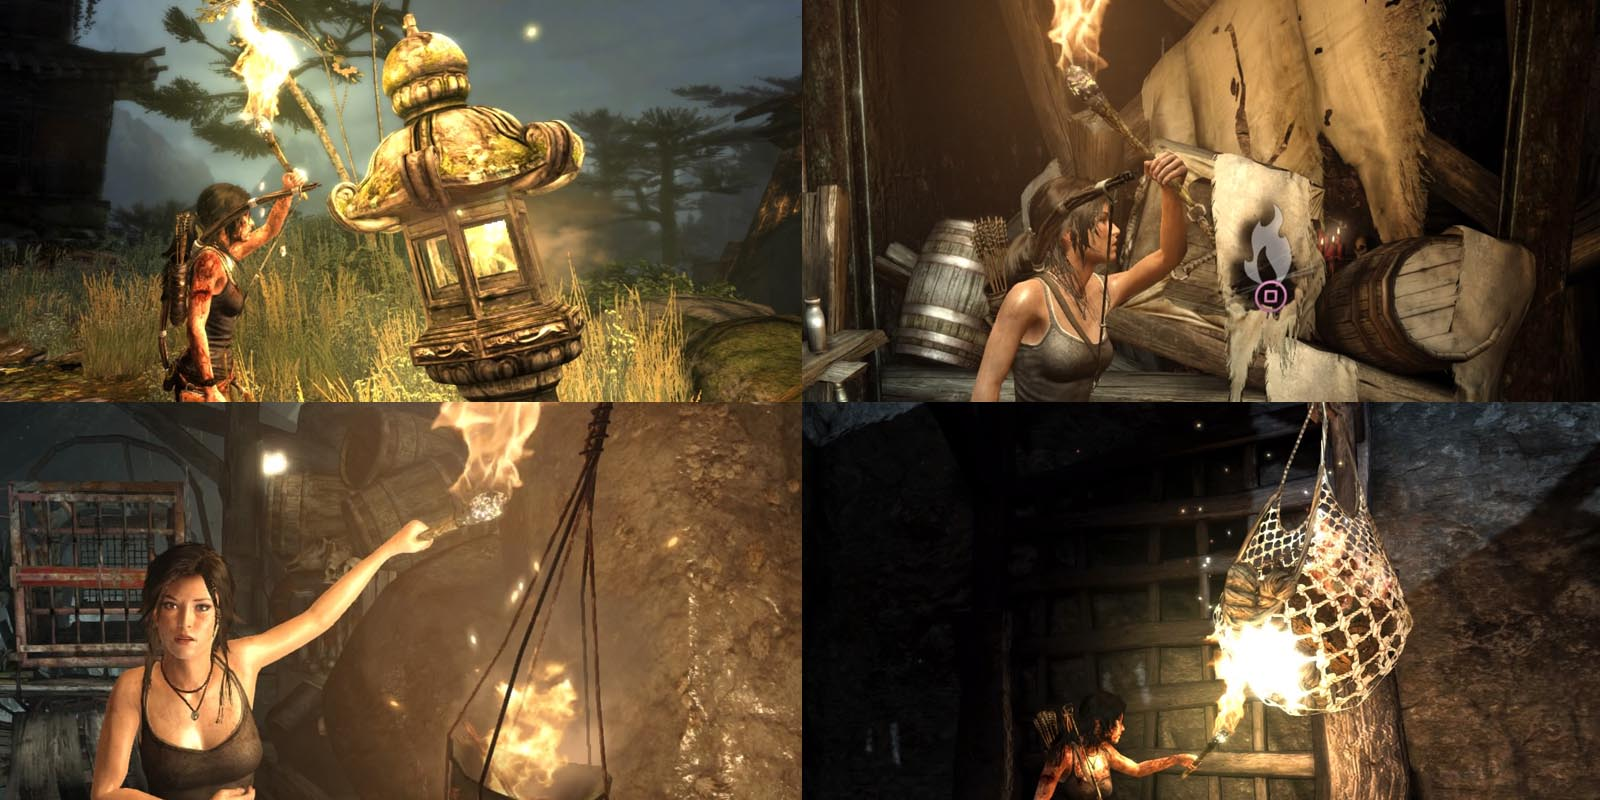 tomb_raider_de_fire_puzzles1